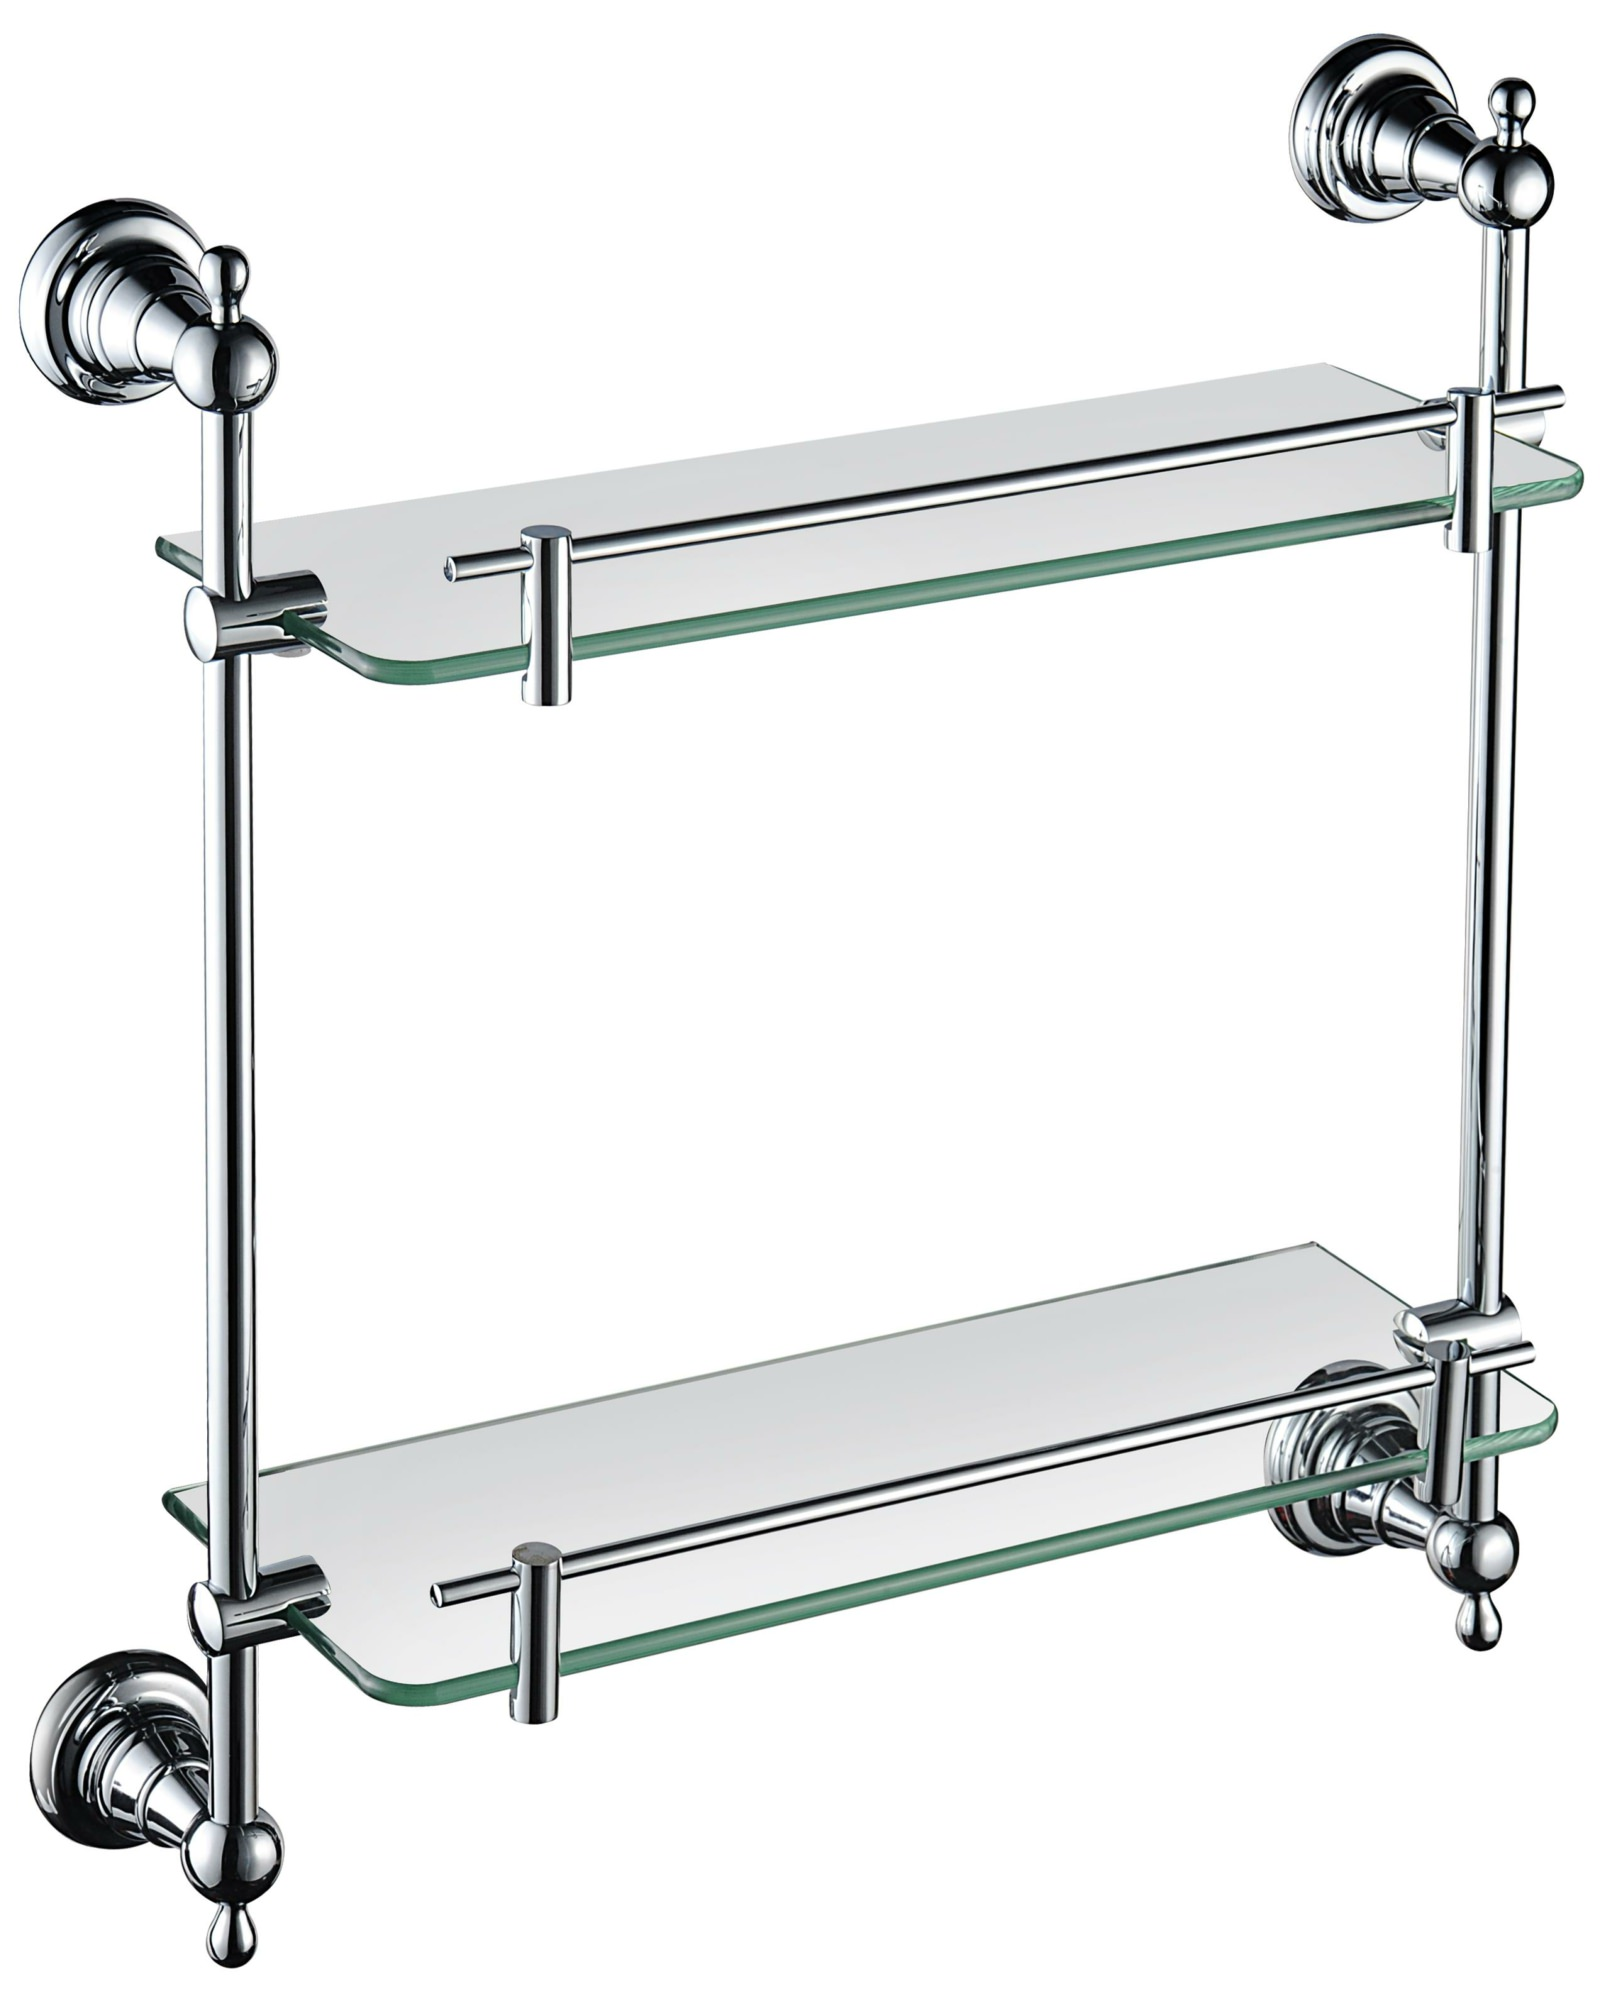 Heritage Holborn 410mm Double Glass Shelf With Chrome Brackets